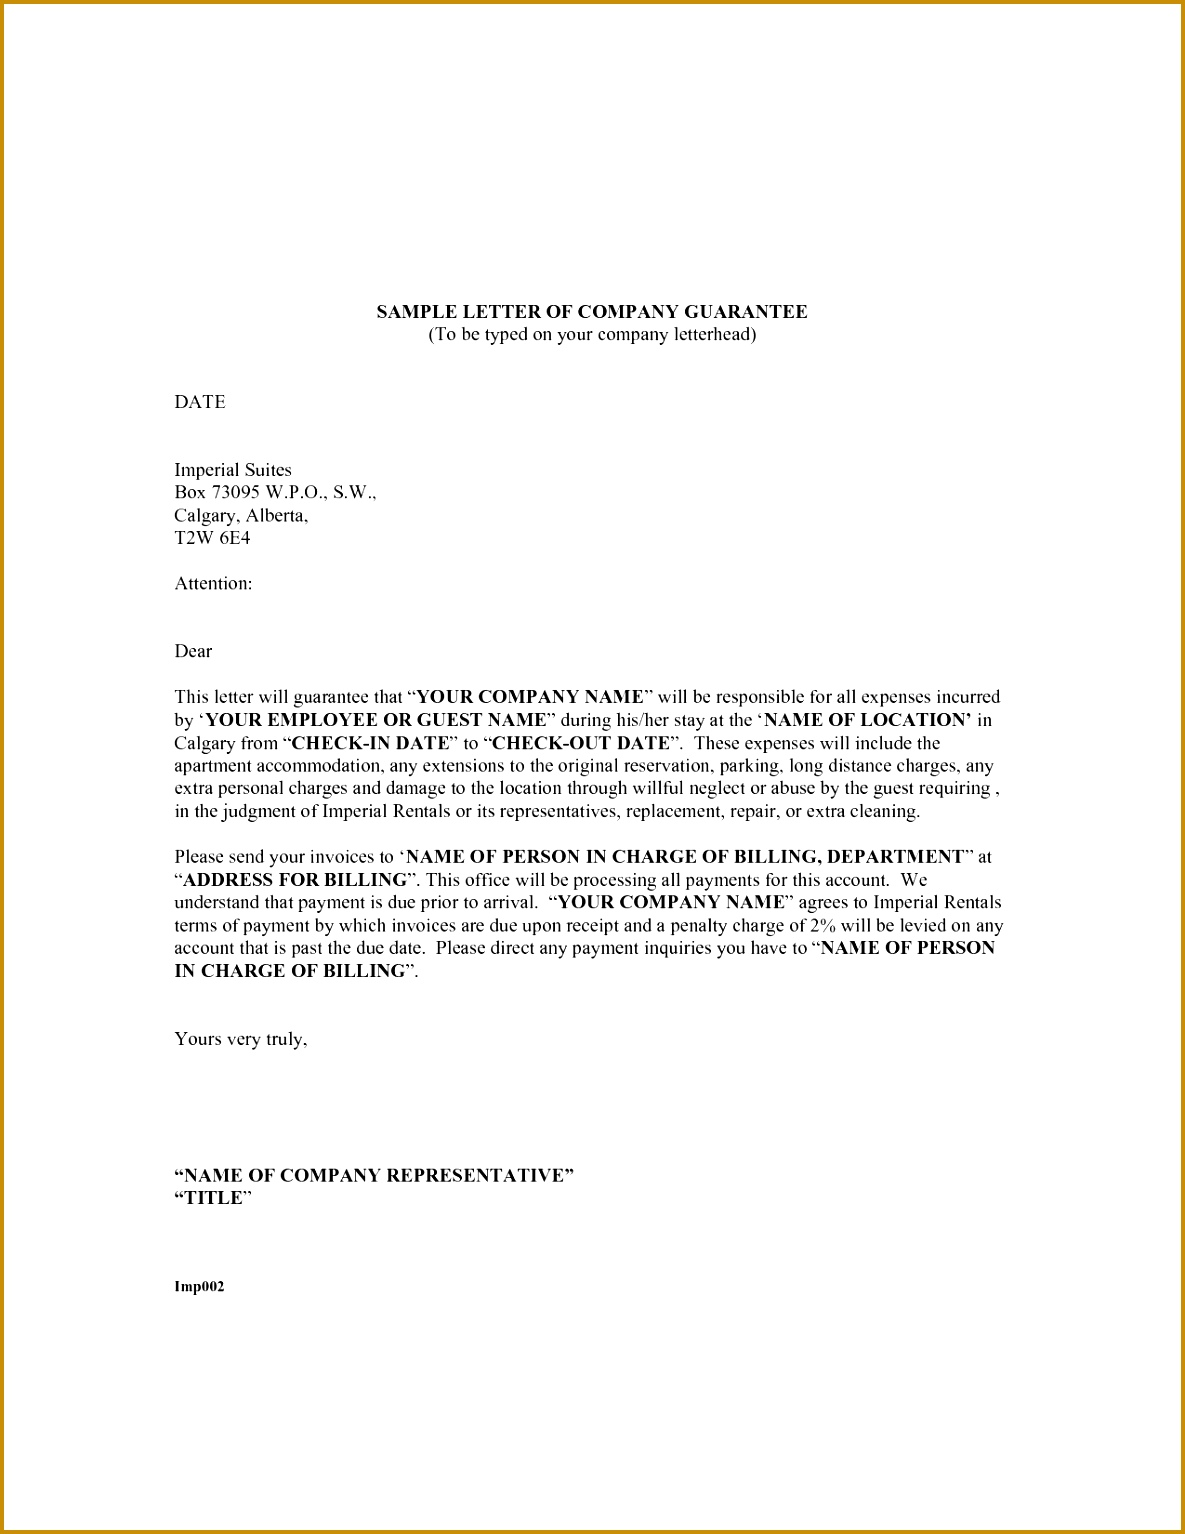 Personal Payment Guarantee Letter 15341185